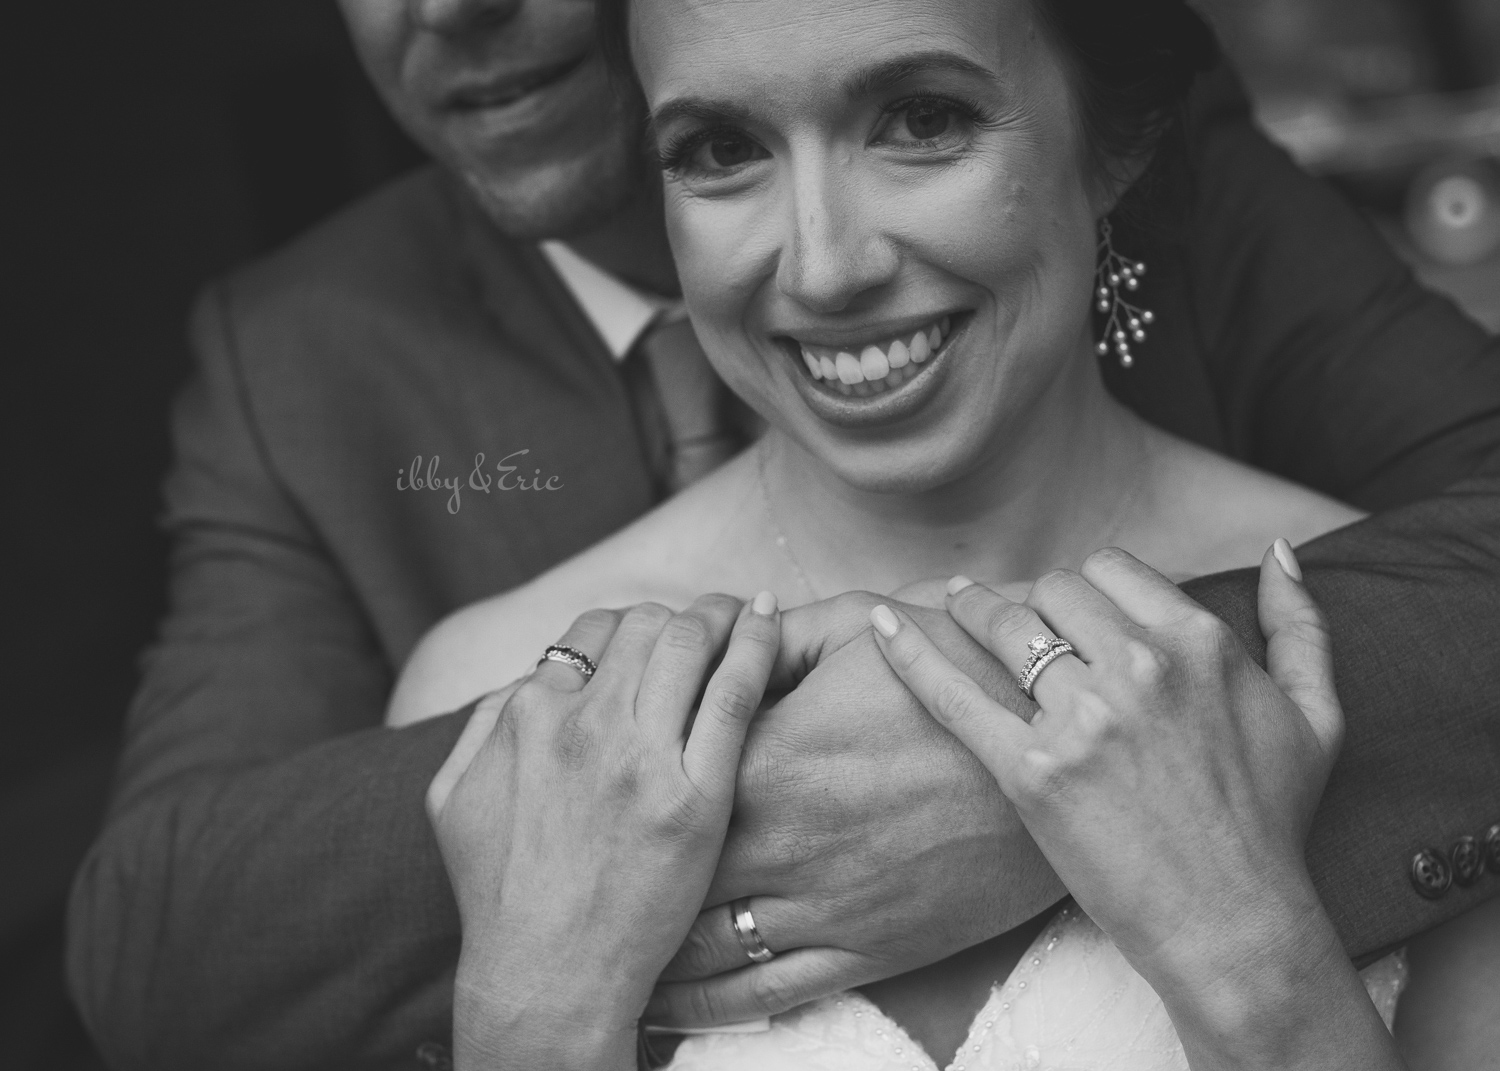 Black and white close up photo of a bride and groom's hands focusing on their wedding rings